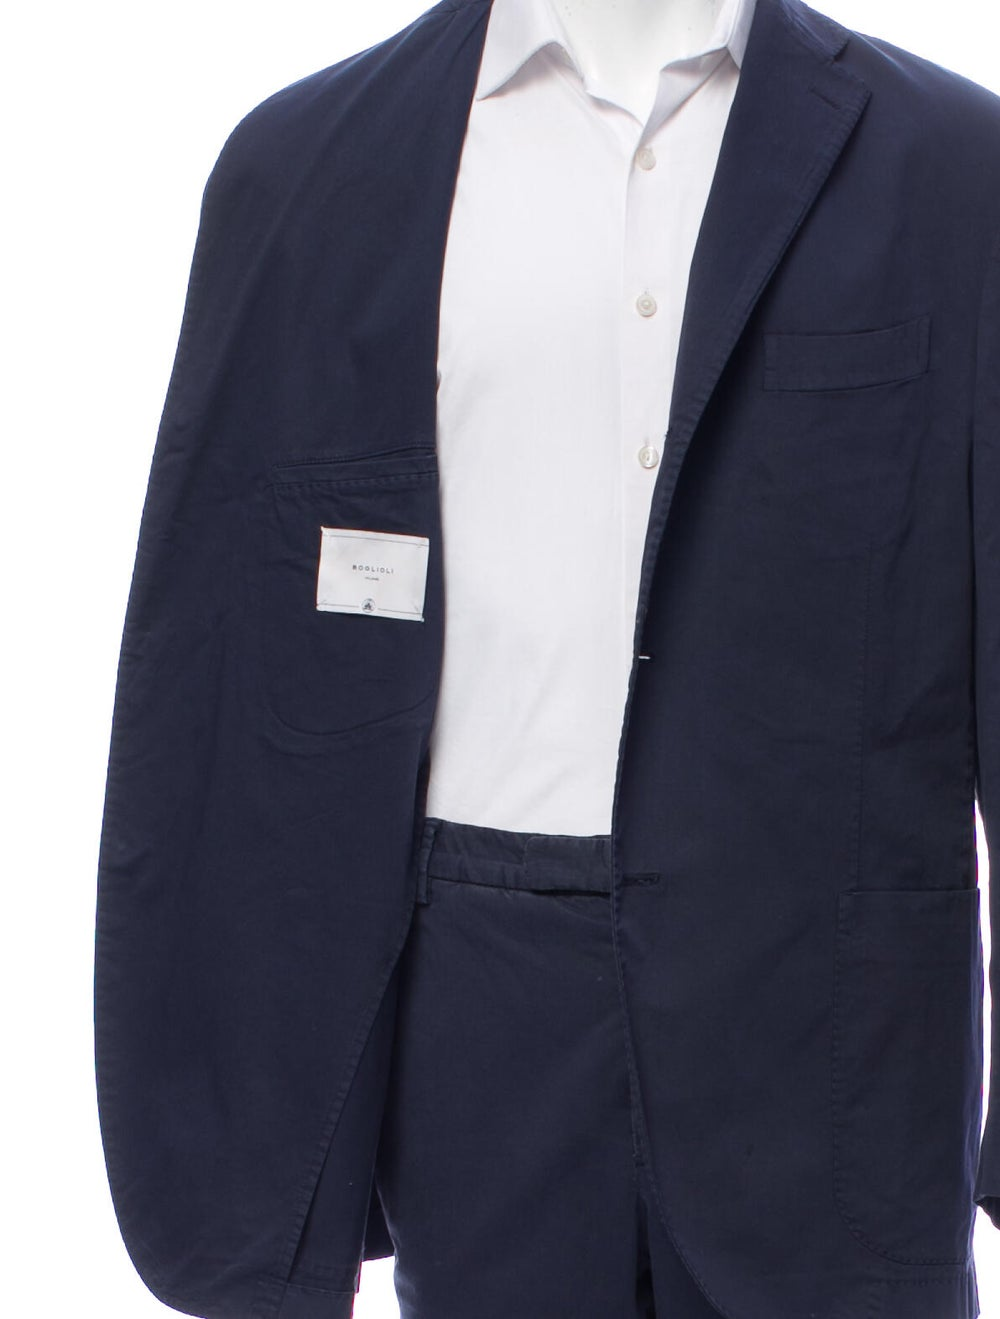 Boglioli Two-Piece Suit Blue - image 4